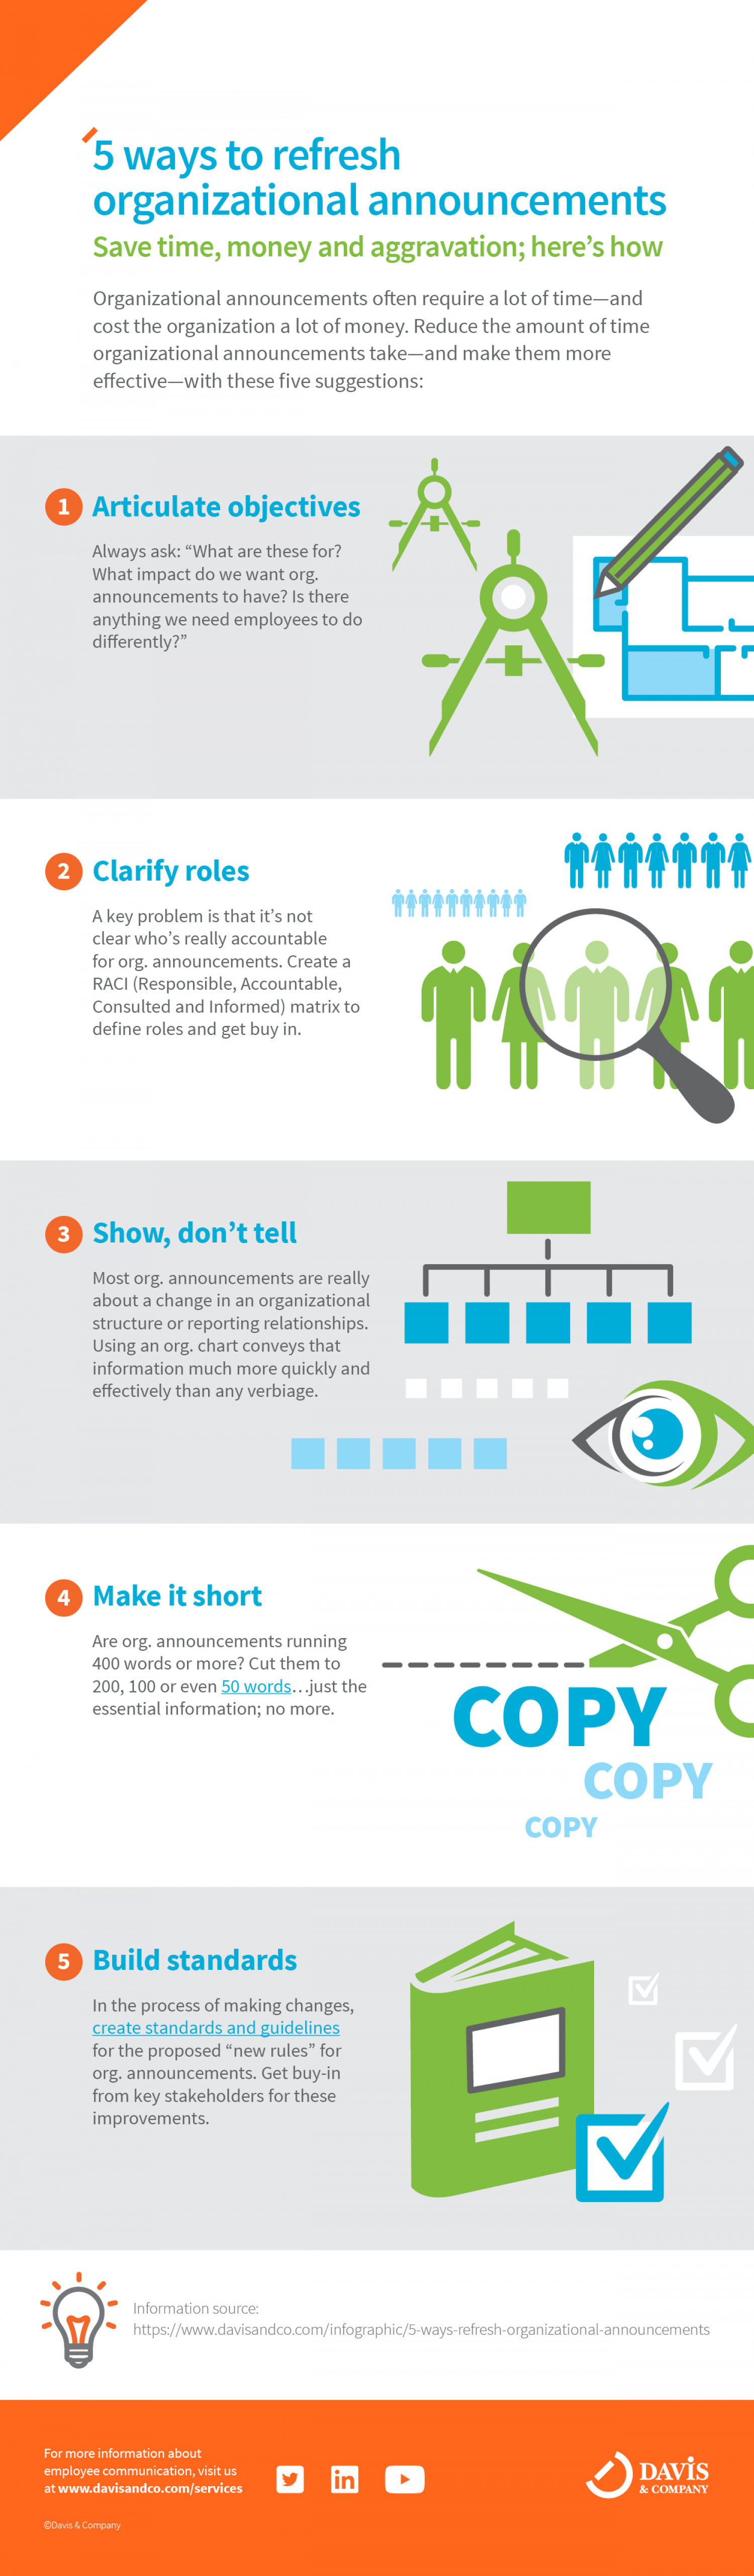 5 ways to refresh organizational announcements Infographic